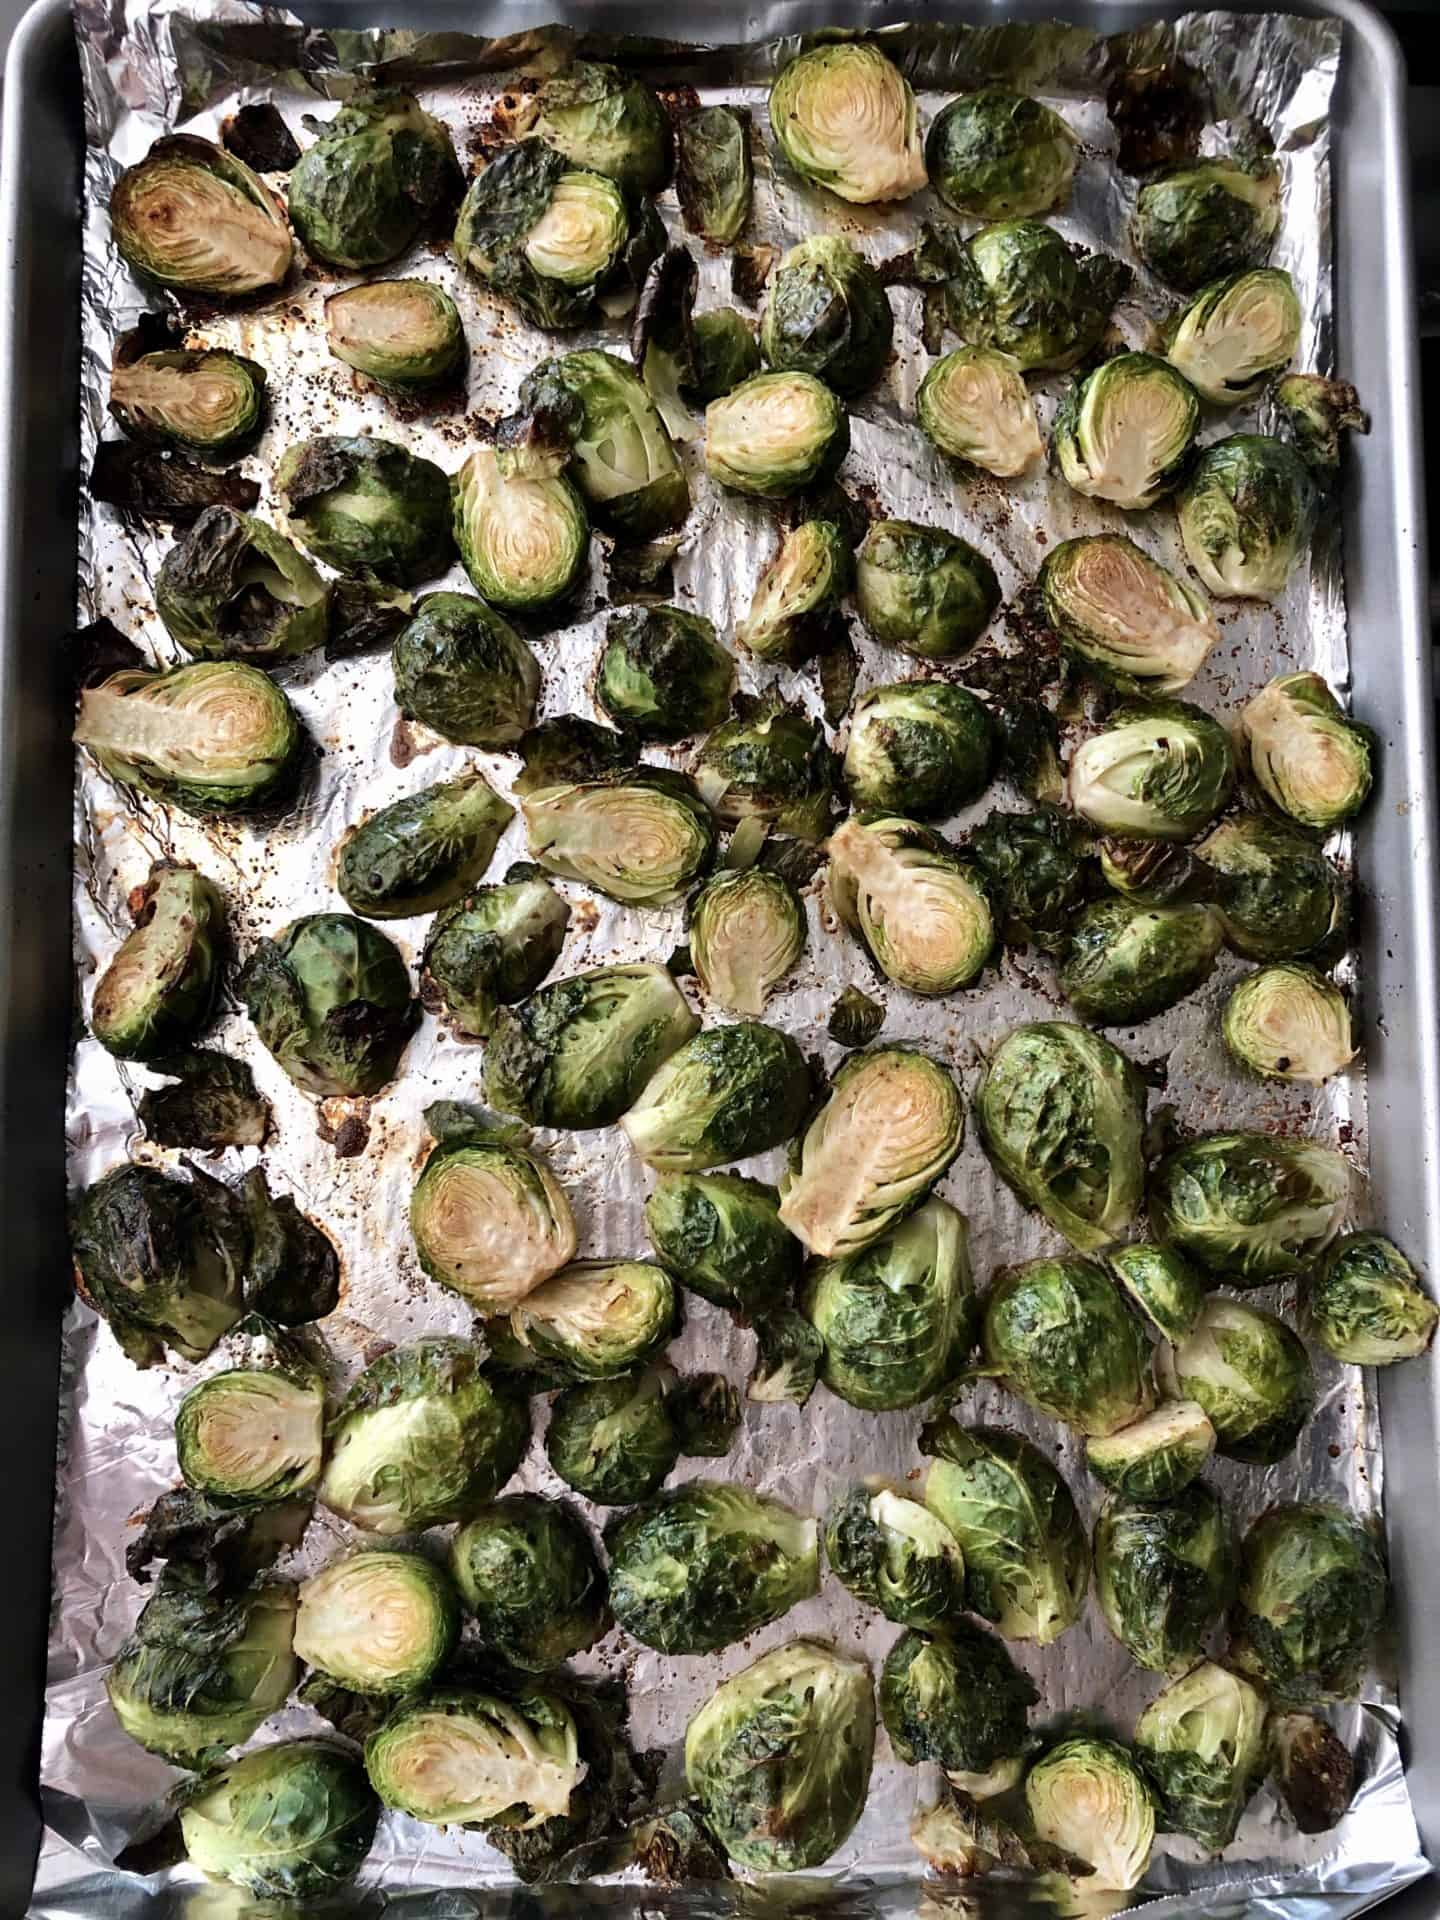 Brussels Sprouts on baking sheet roasted